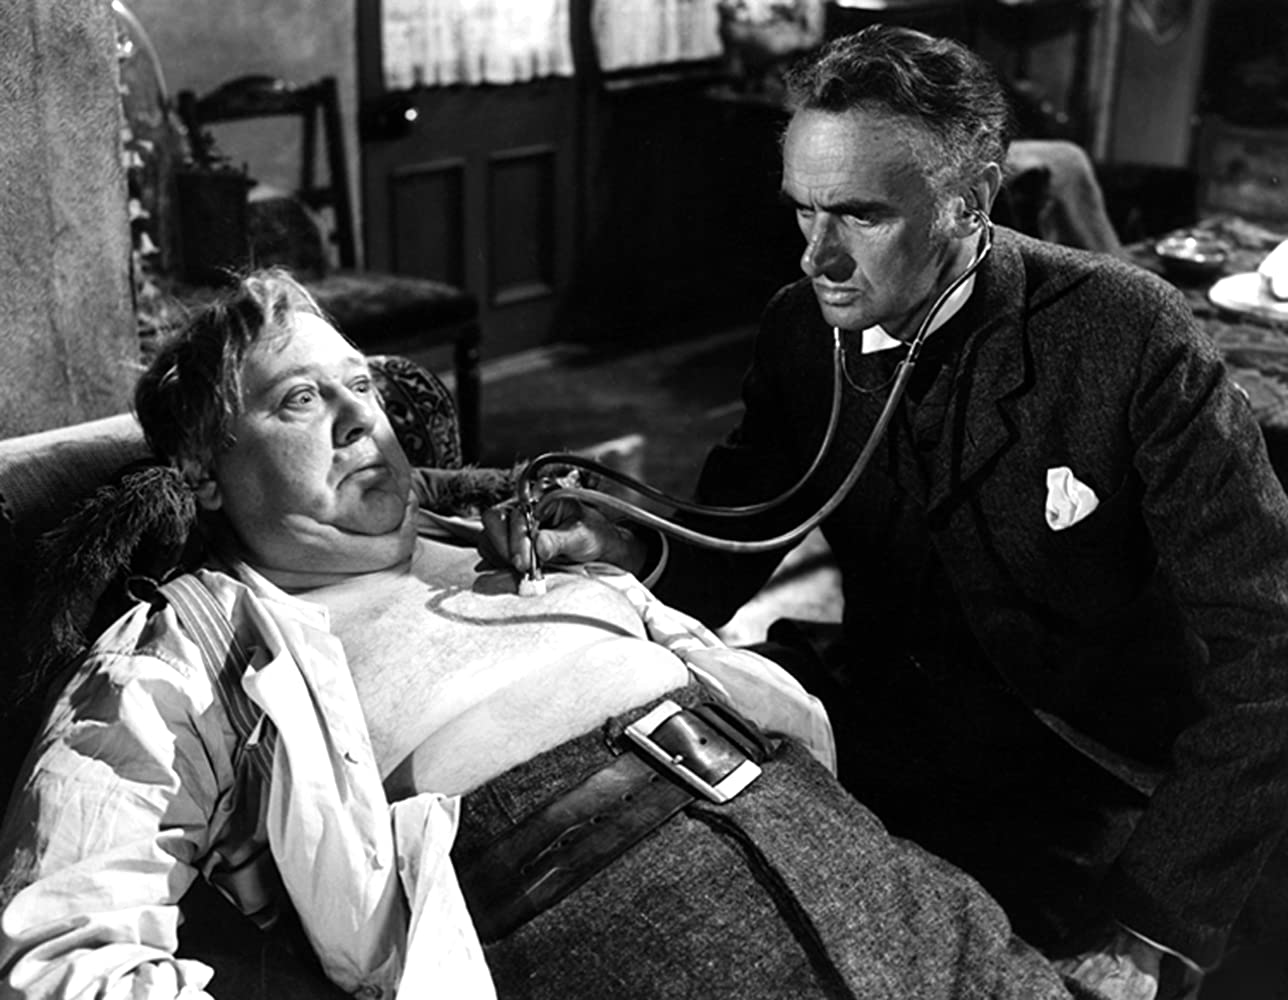 Charles Laughton and John Laurie in Hobson's Choice (1954)